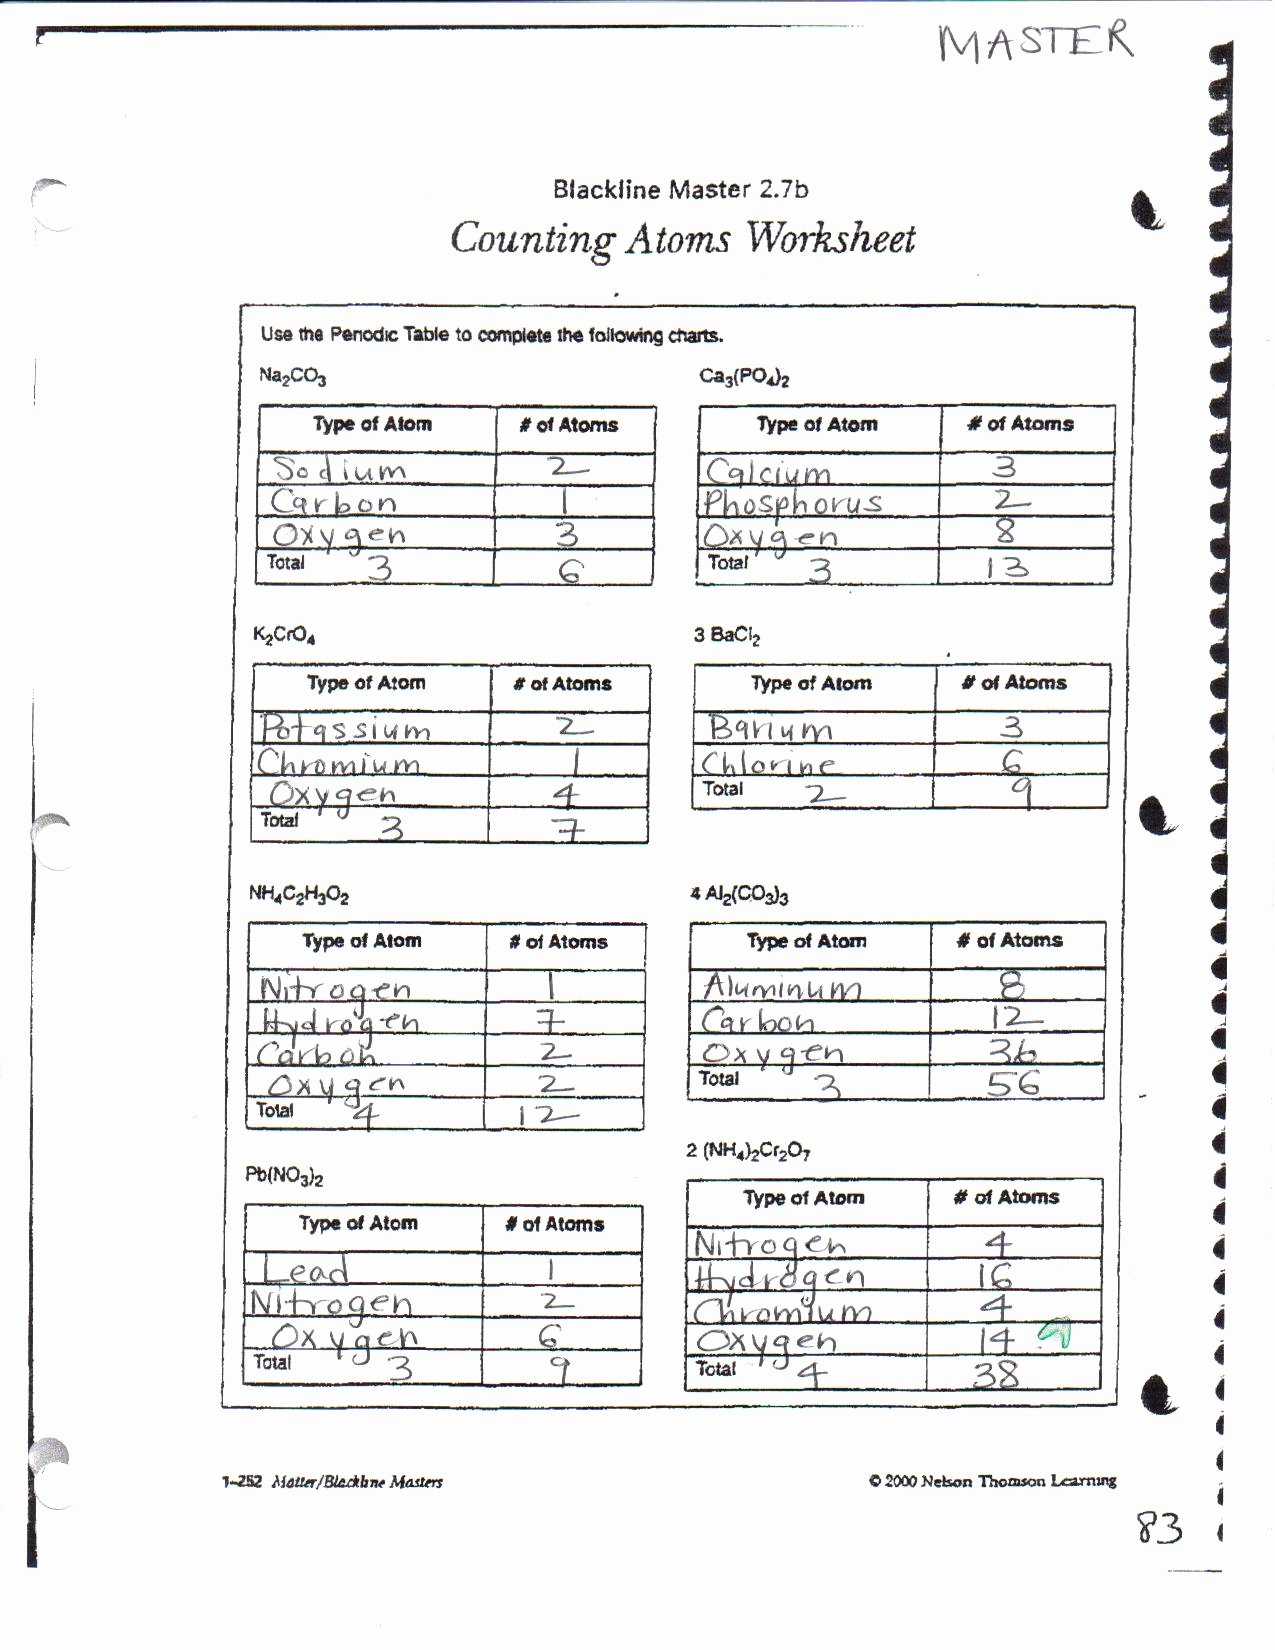 Counting atoms Worksheet Answer Key Beautiful toxic Science